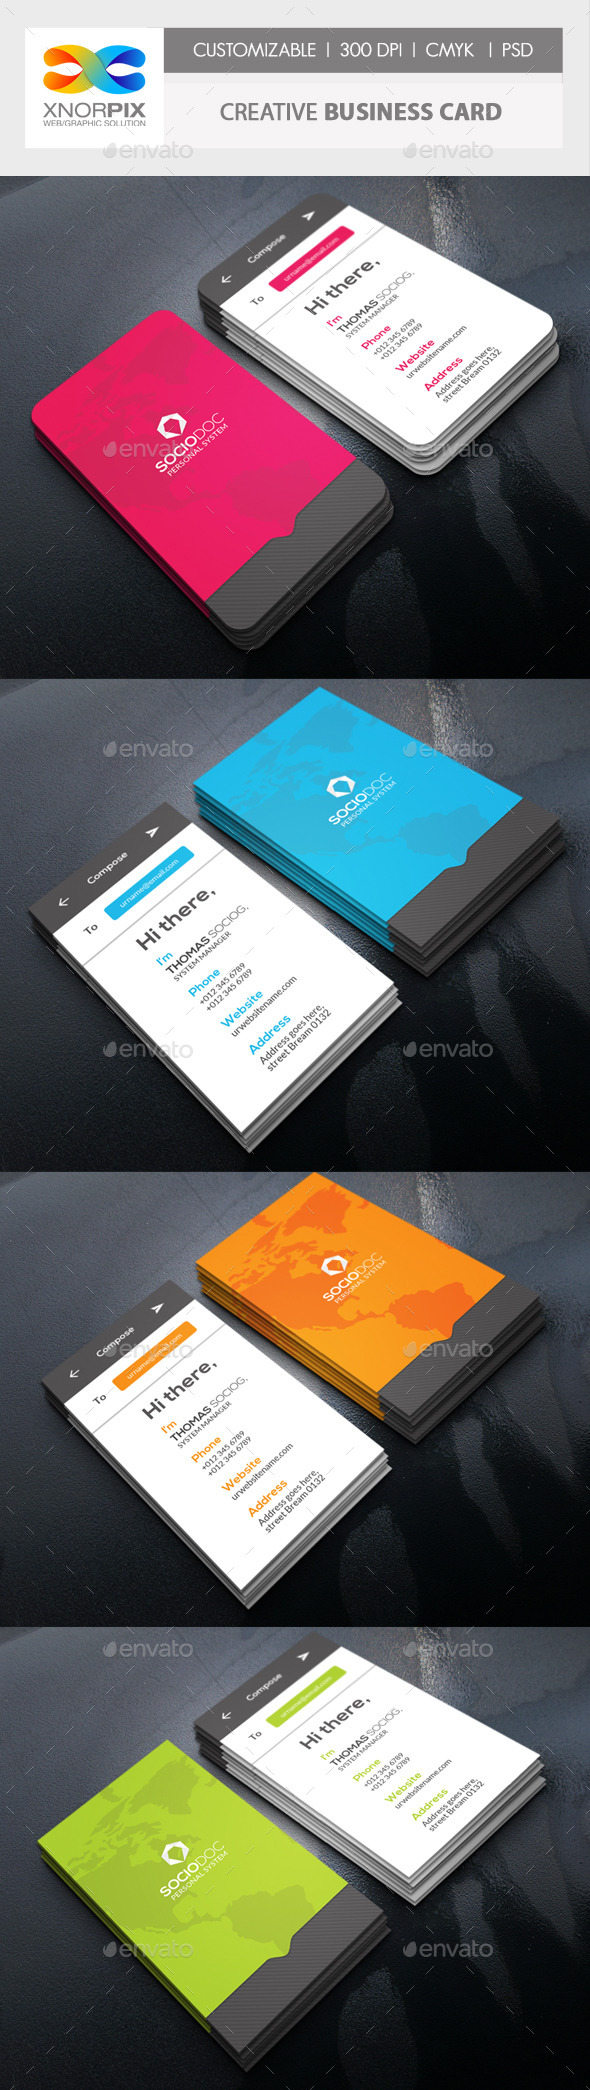 Message Business Card - Creative Business Cards